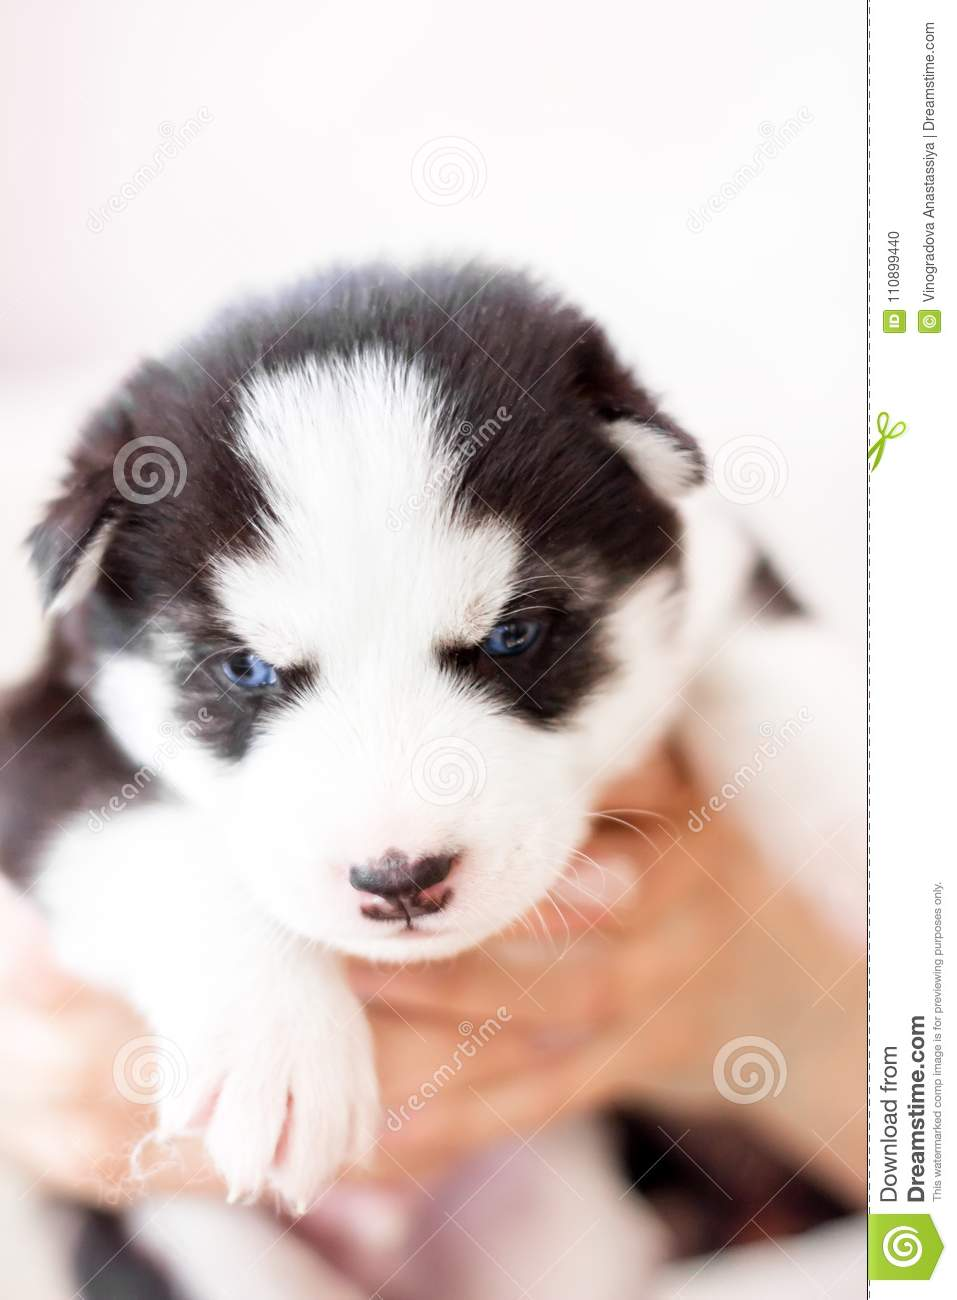 Cute Siberian Husky Puppy Sitting On Sofa At Home Stock Photo Image Of Cute Animal 110899440